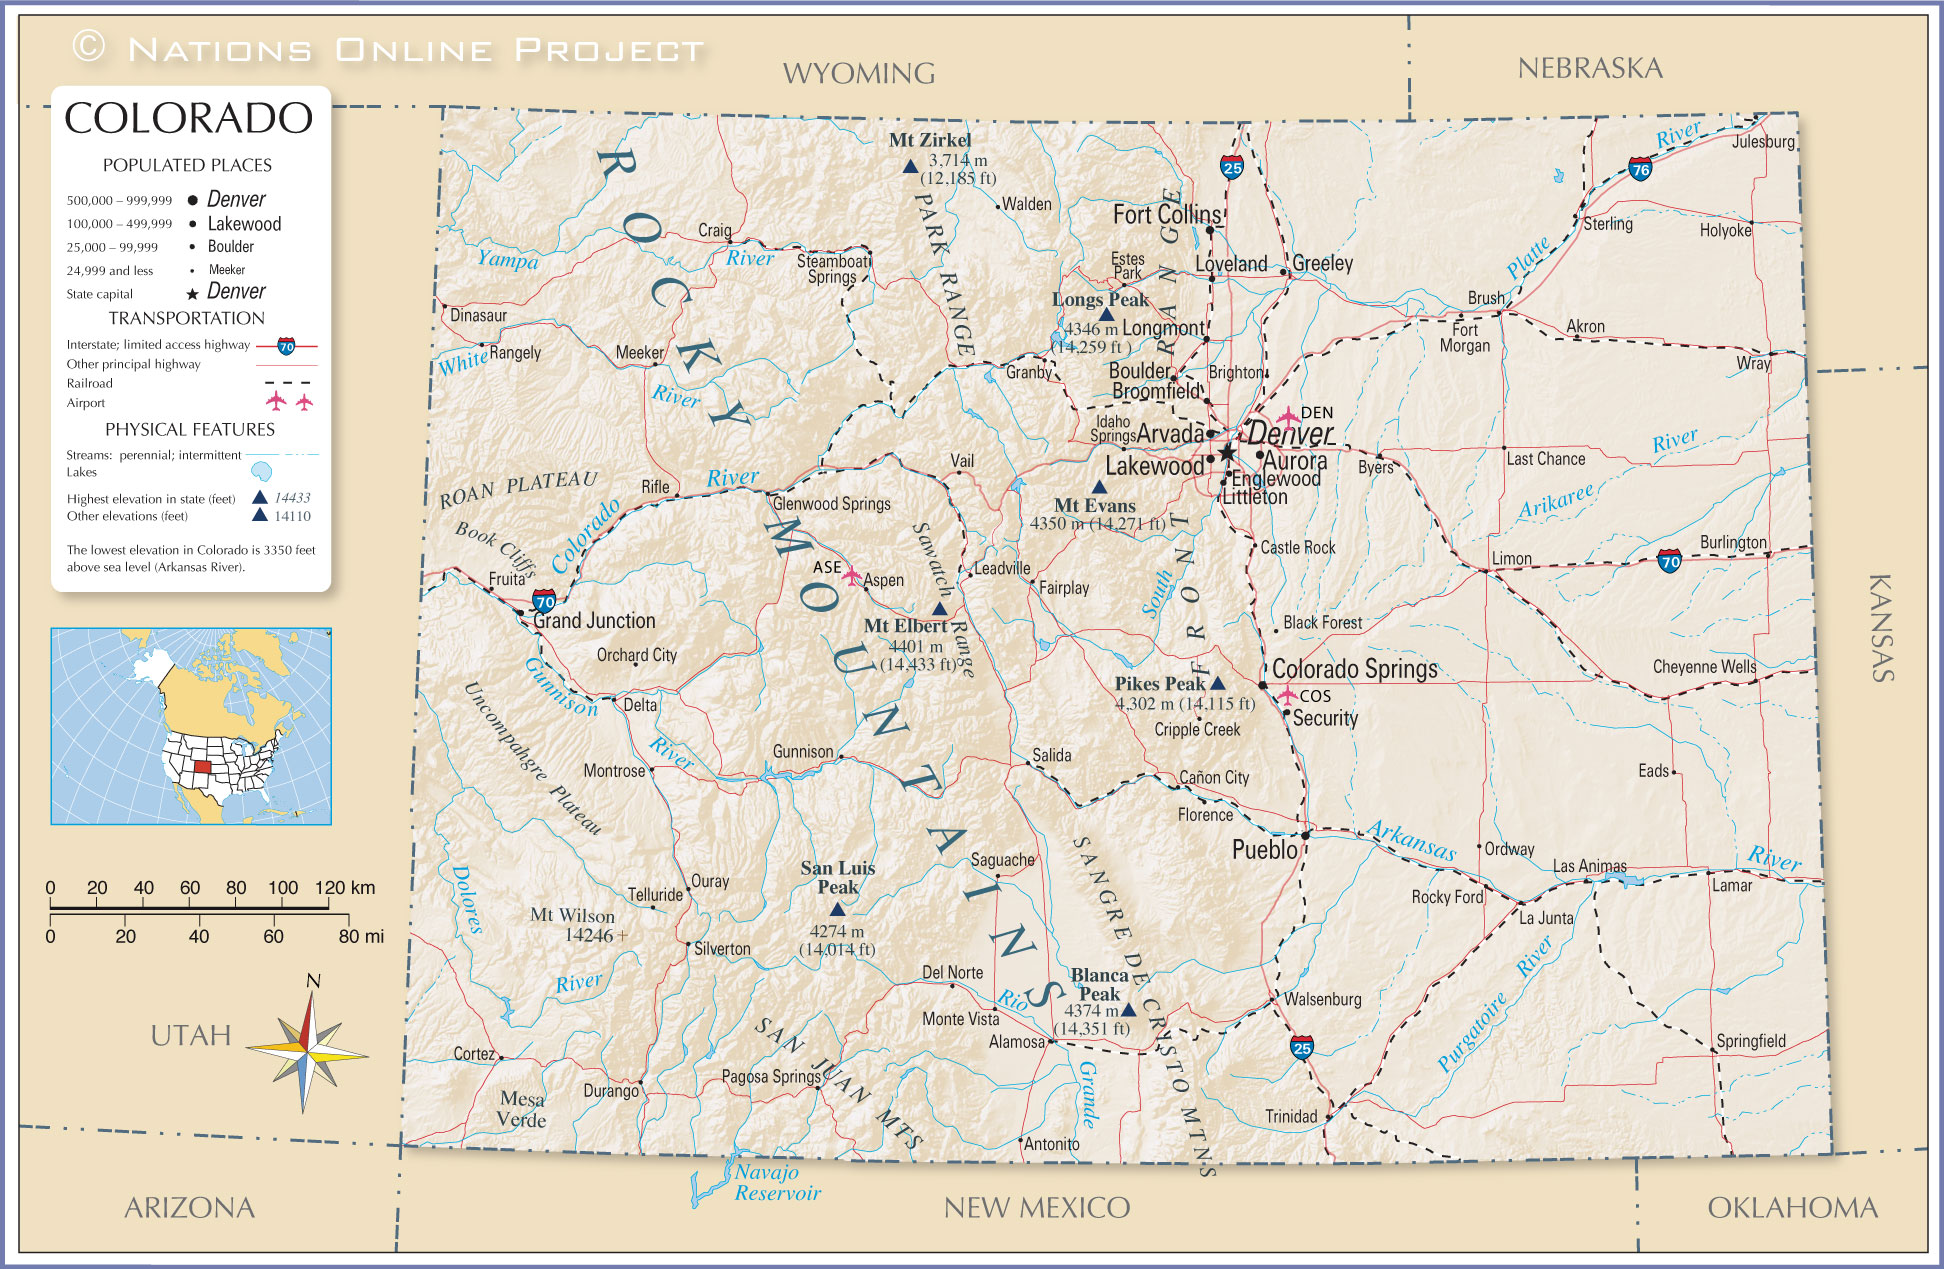 Reference Map of Colorado, USA - Nations Online Project